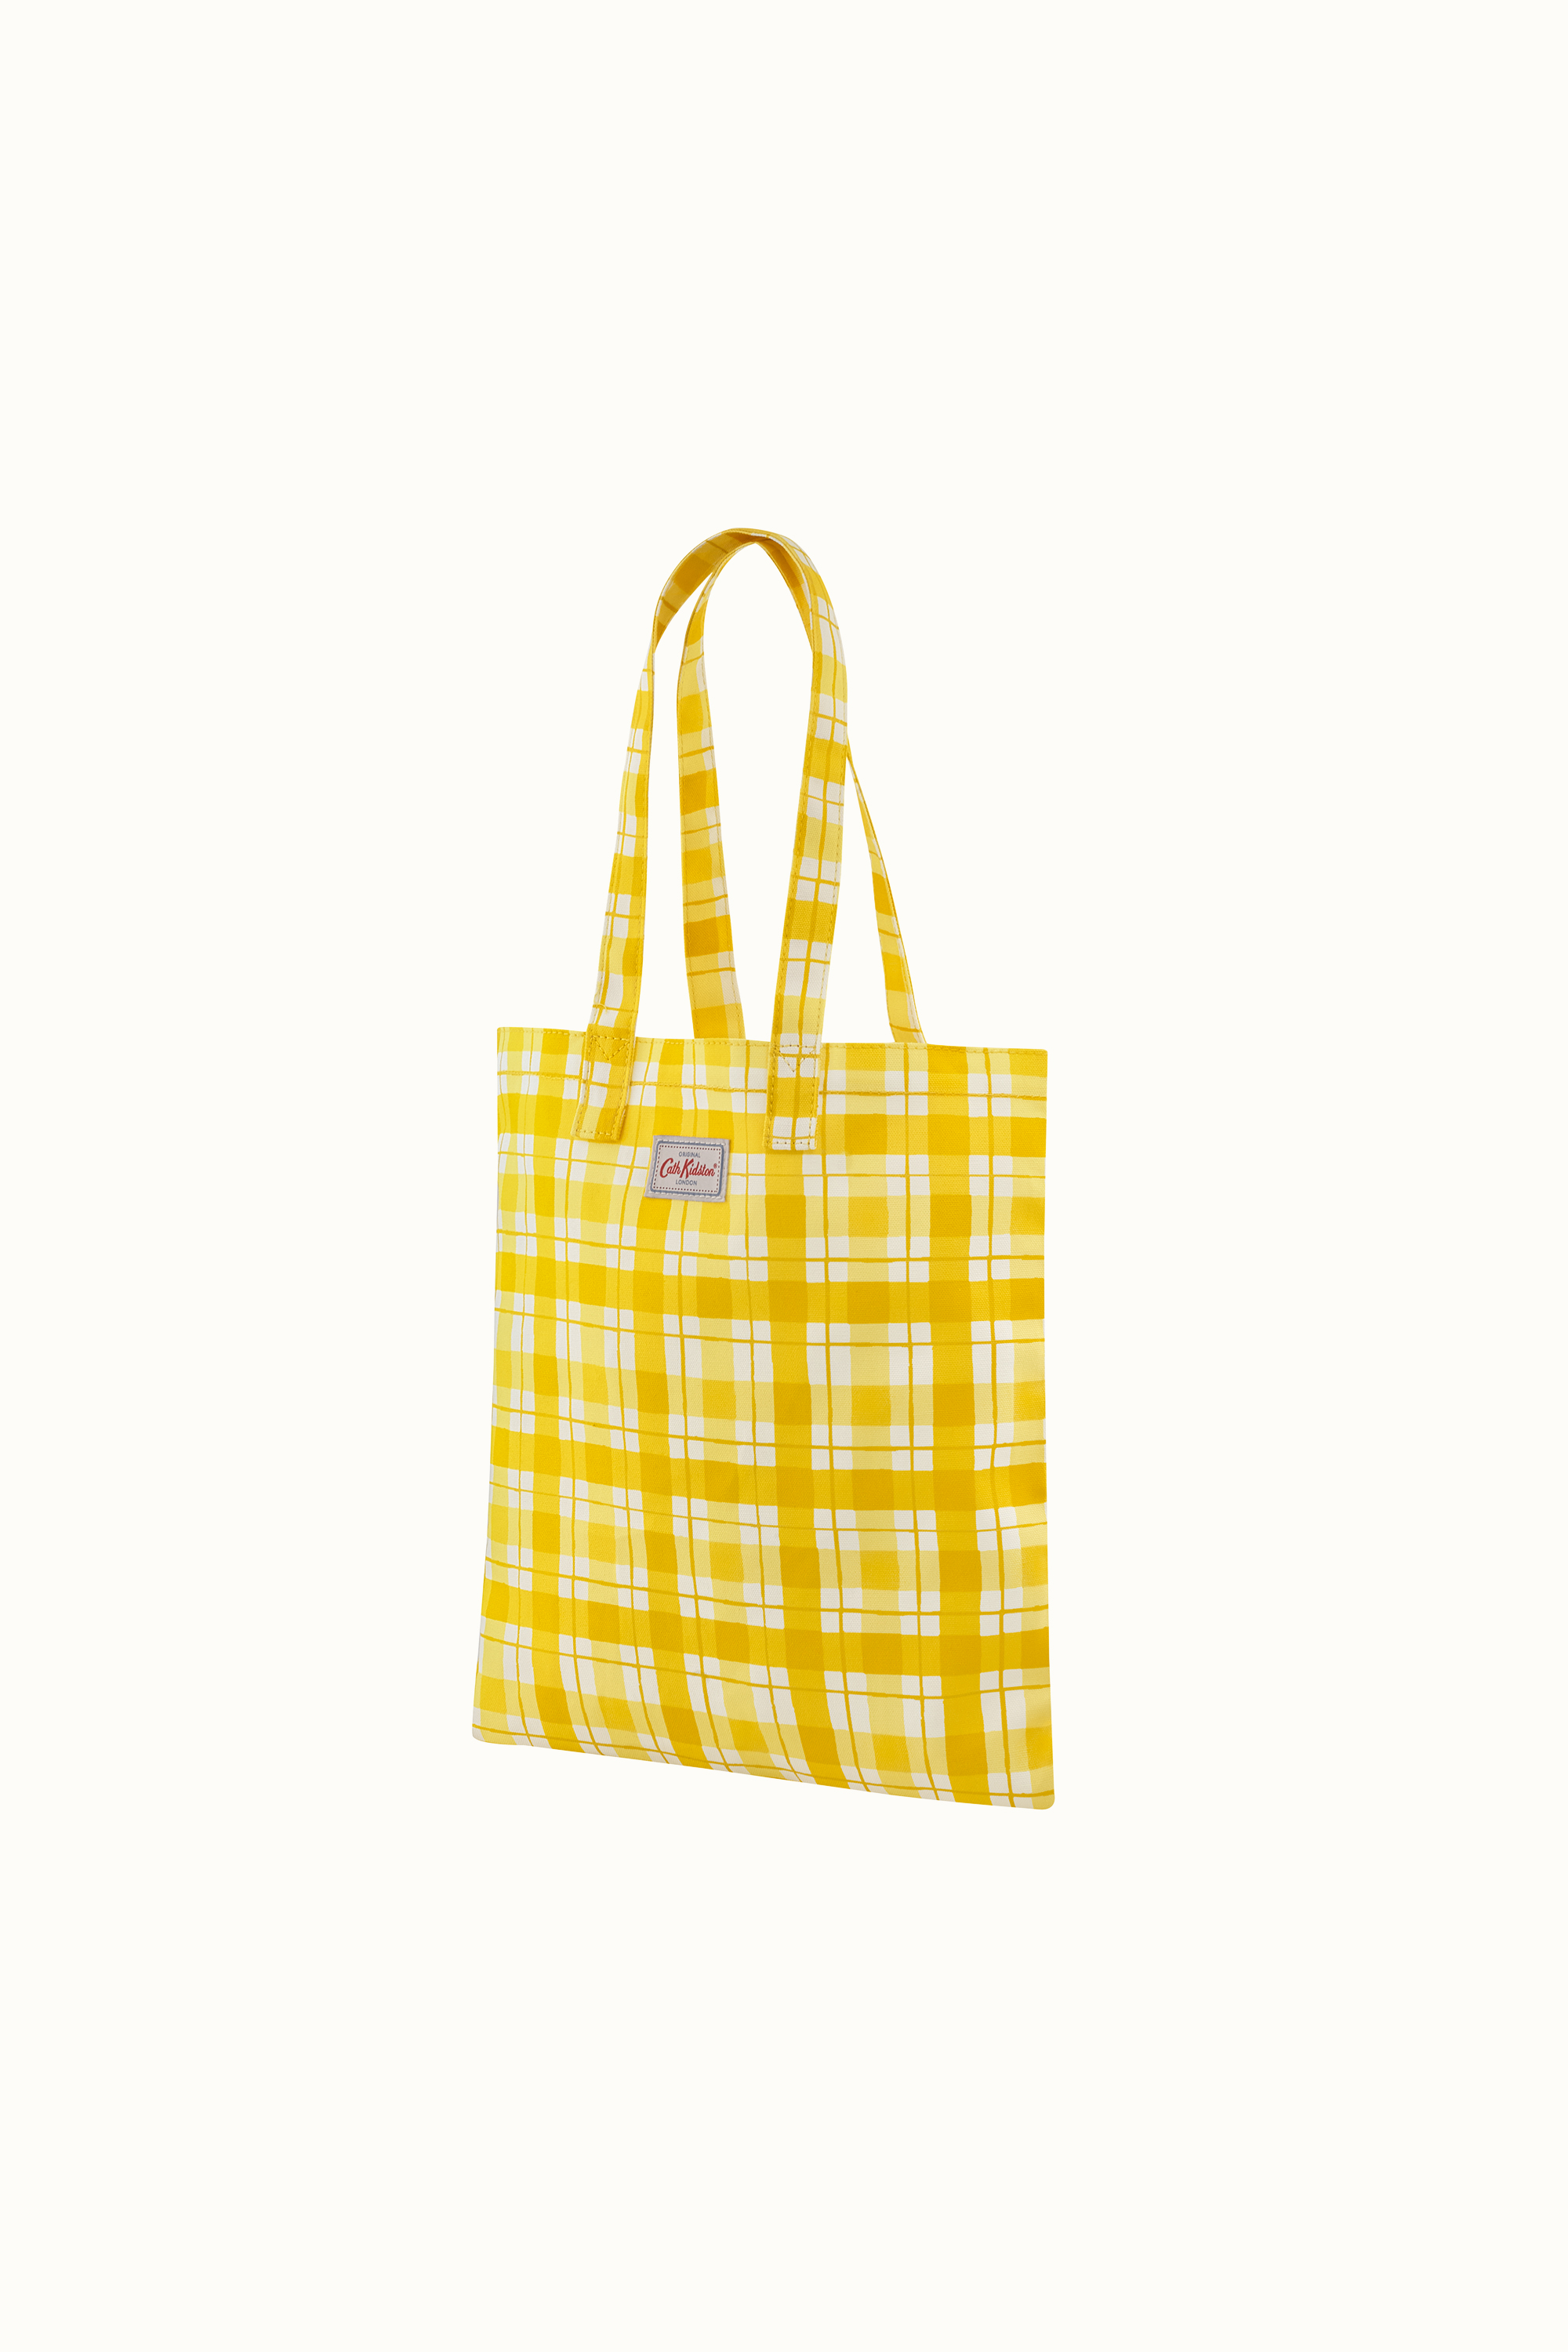 Cath Kidston Painted Check Cotton Bookbag in Yellow